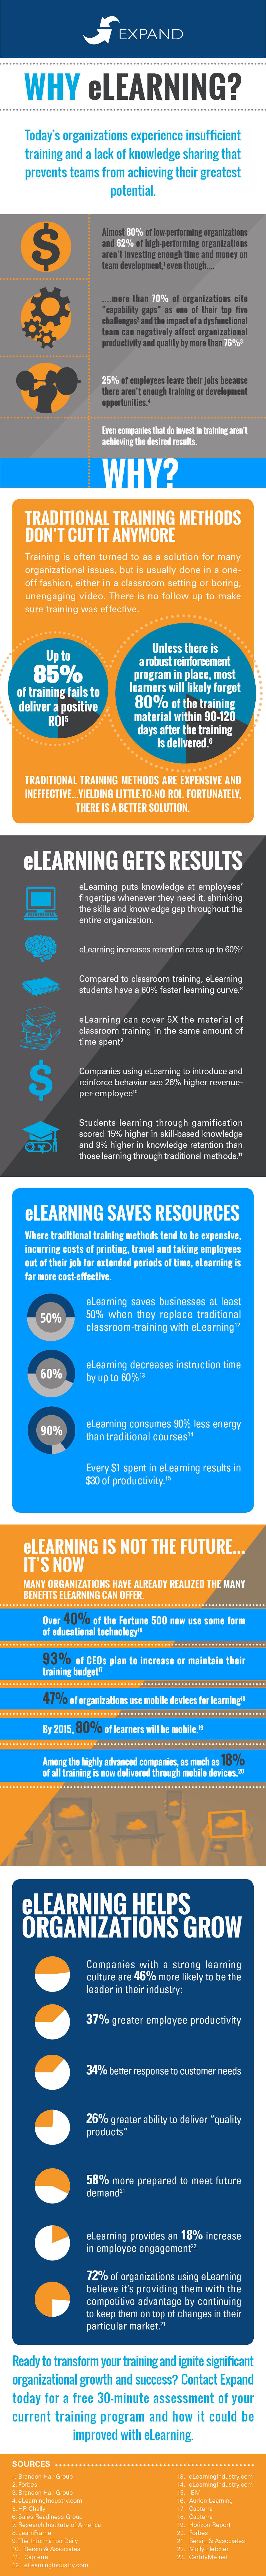 Why eLearning Is The Most Effective Method Of Training Employees Infographic